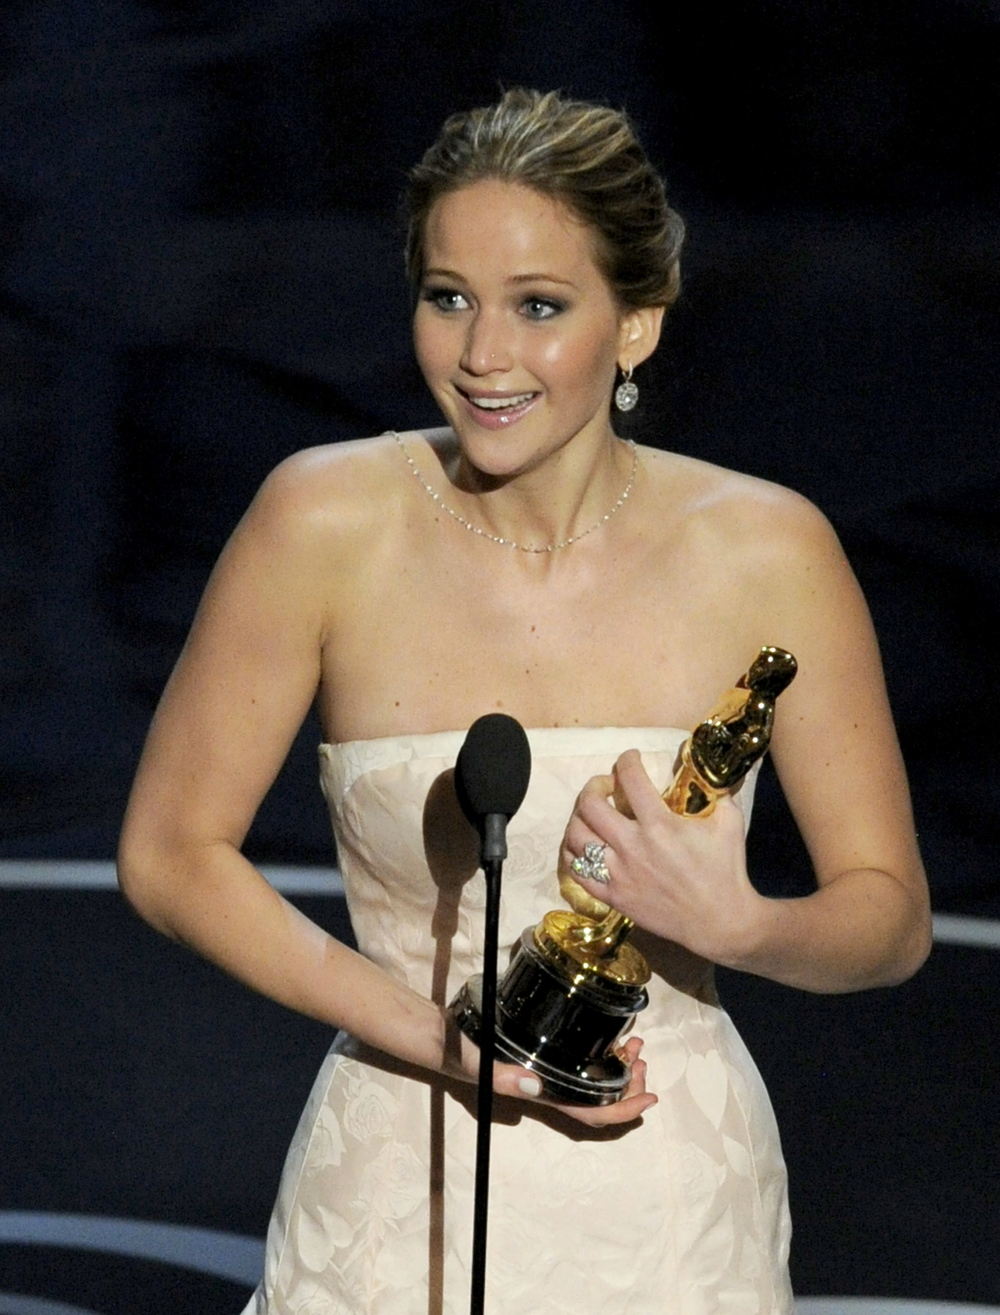 85th_Academy_Awards_-_Sh80.jpg